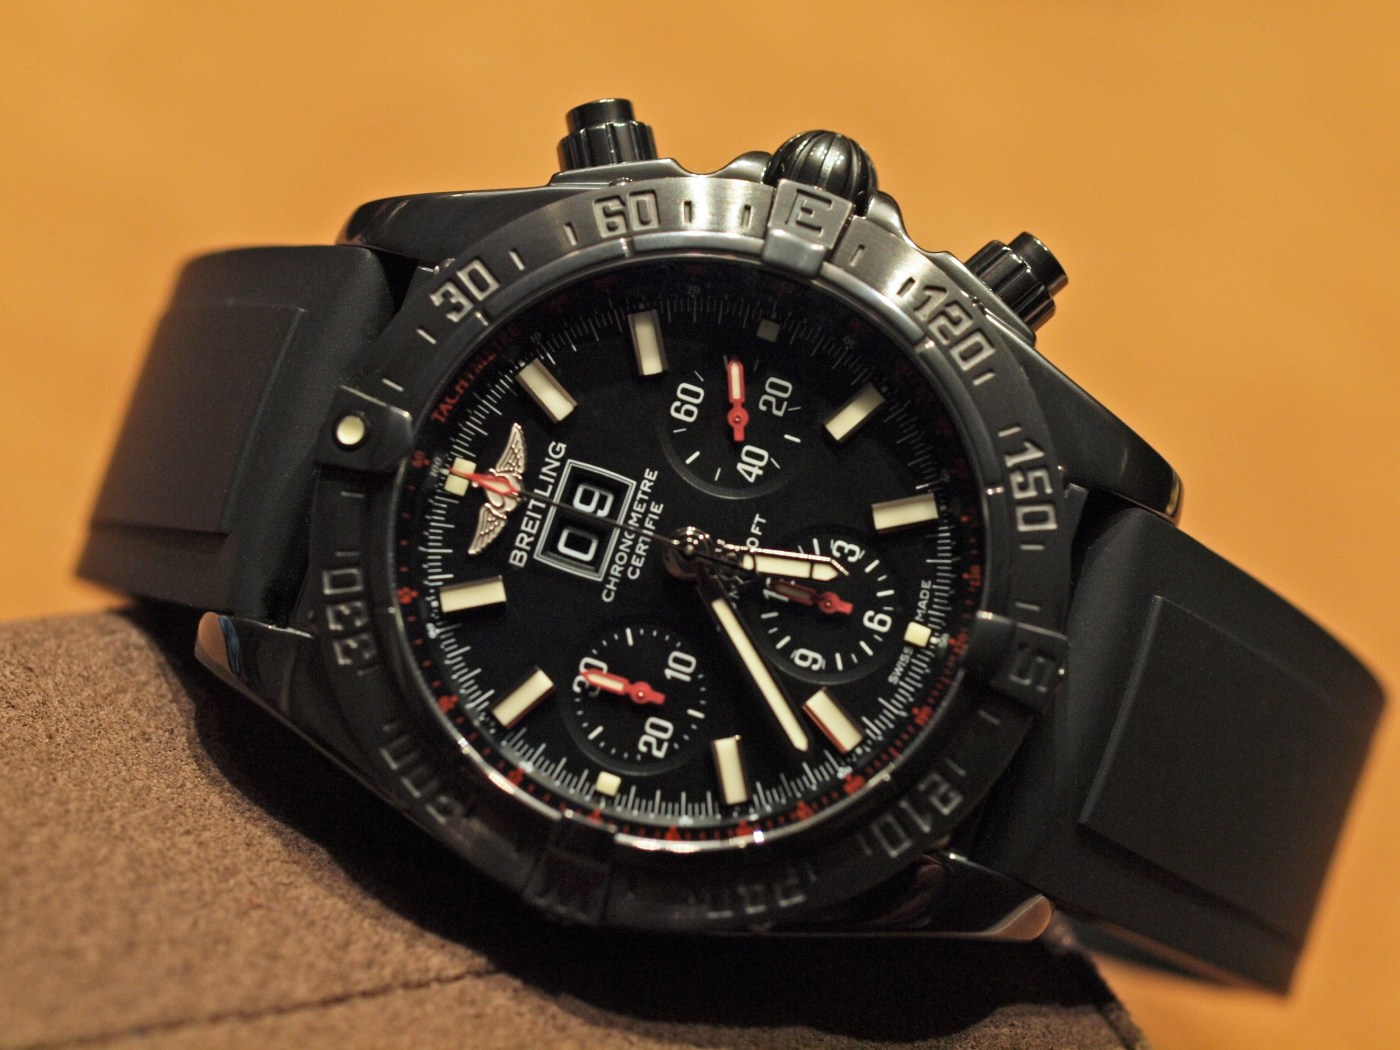 Breitling Blackbird Blacksteel DLC Chronograph